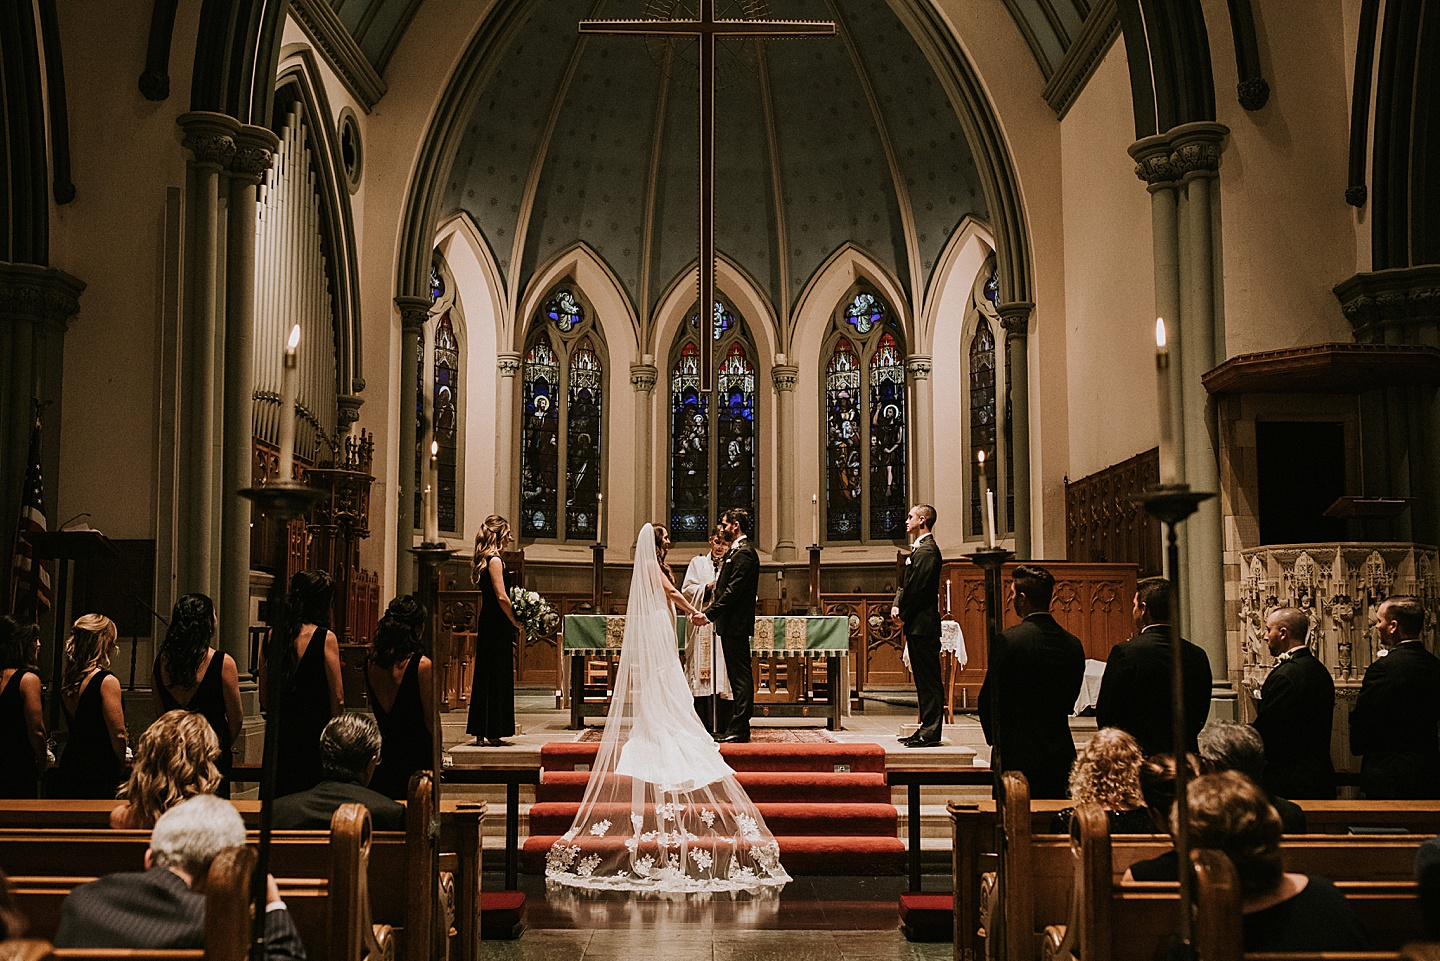 Bride and groom at church wedding in Pittsburgh PA